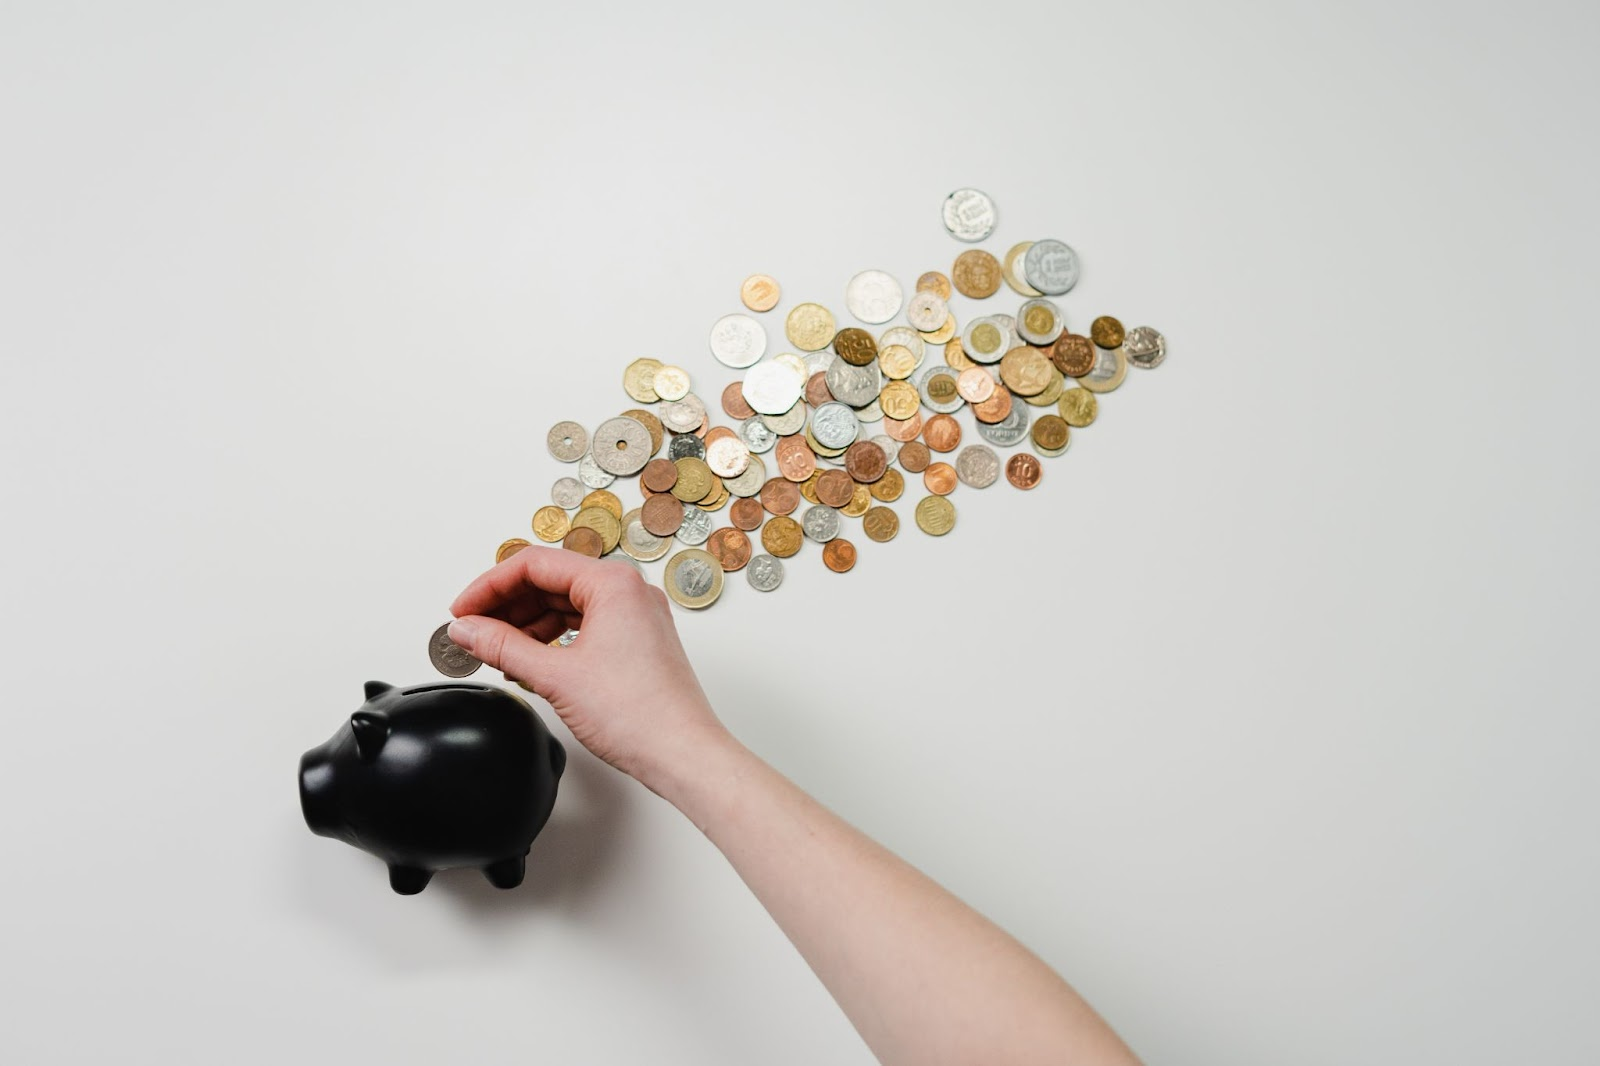 Support star employee by giving them performance pay